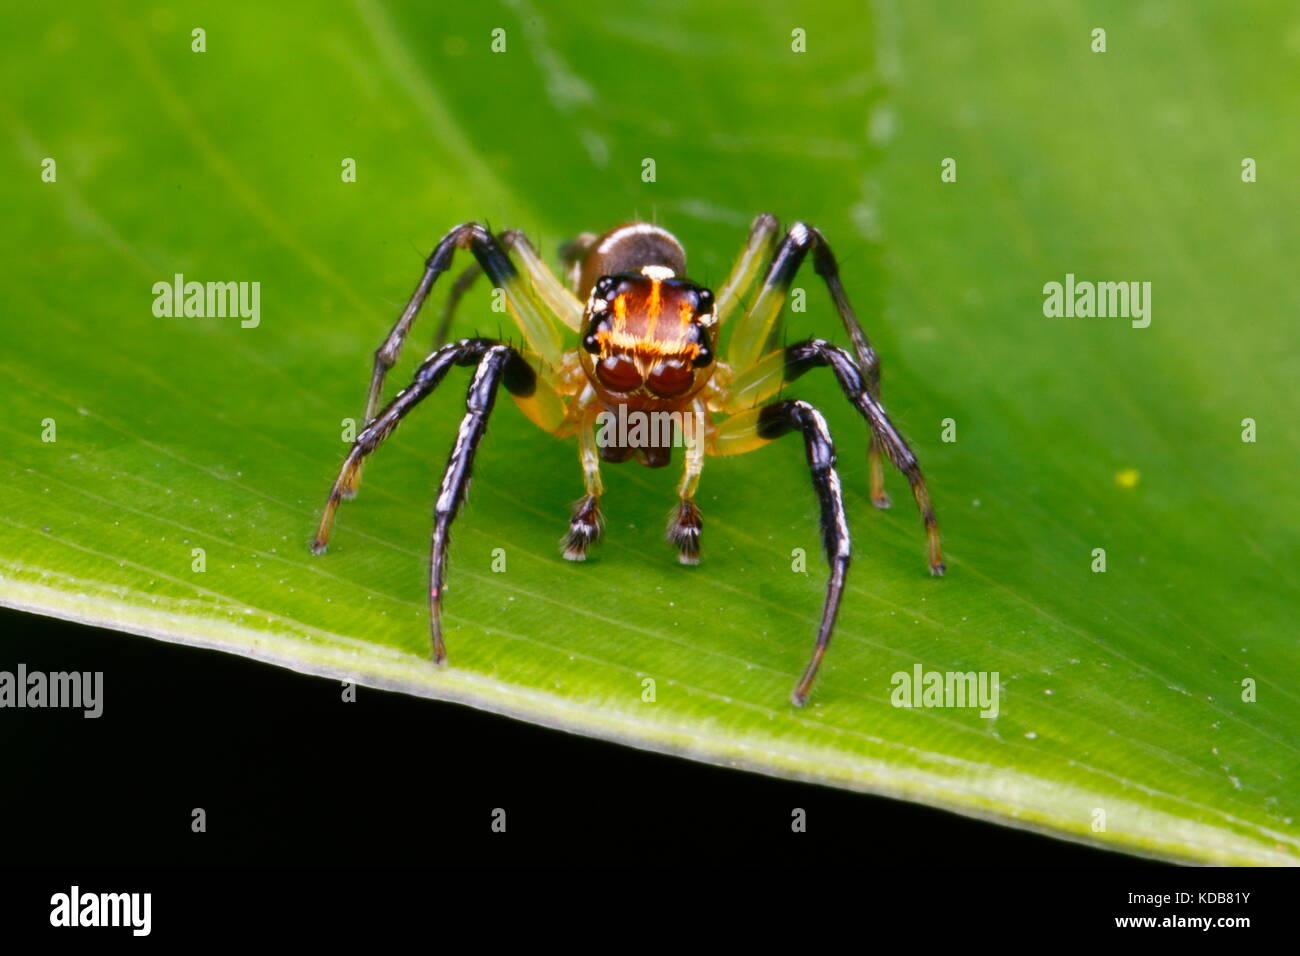 A jumping spider, Tropische Springspinne, or Tropische Huepfspinne, crawling on a leaf. - Stock Image